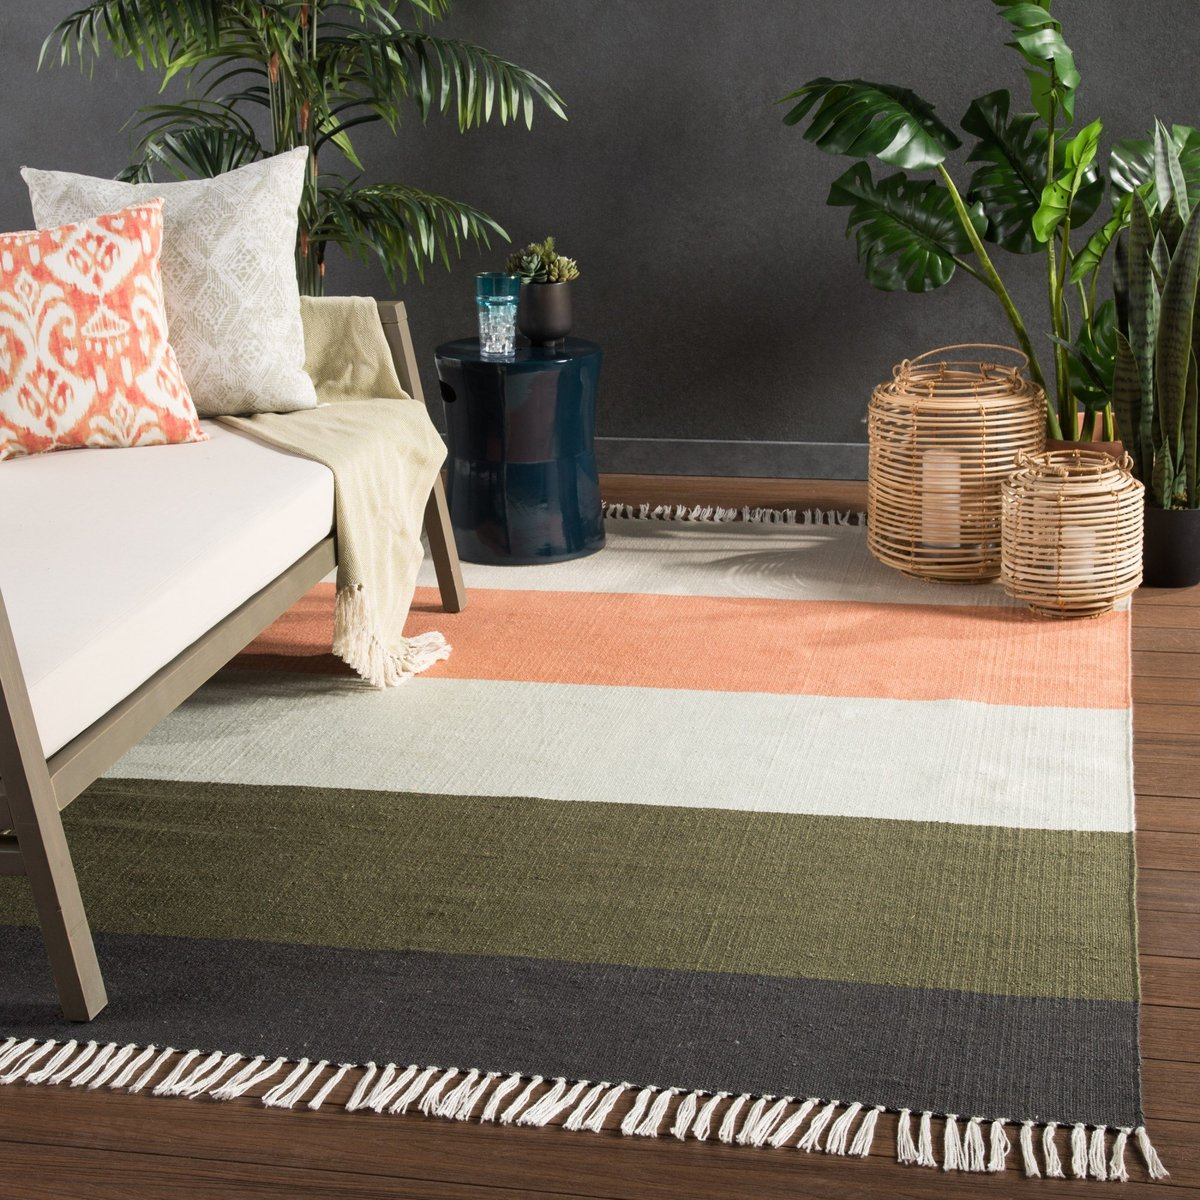 Soothing Stripes Outdoor Rug Ideas